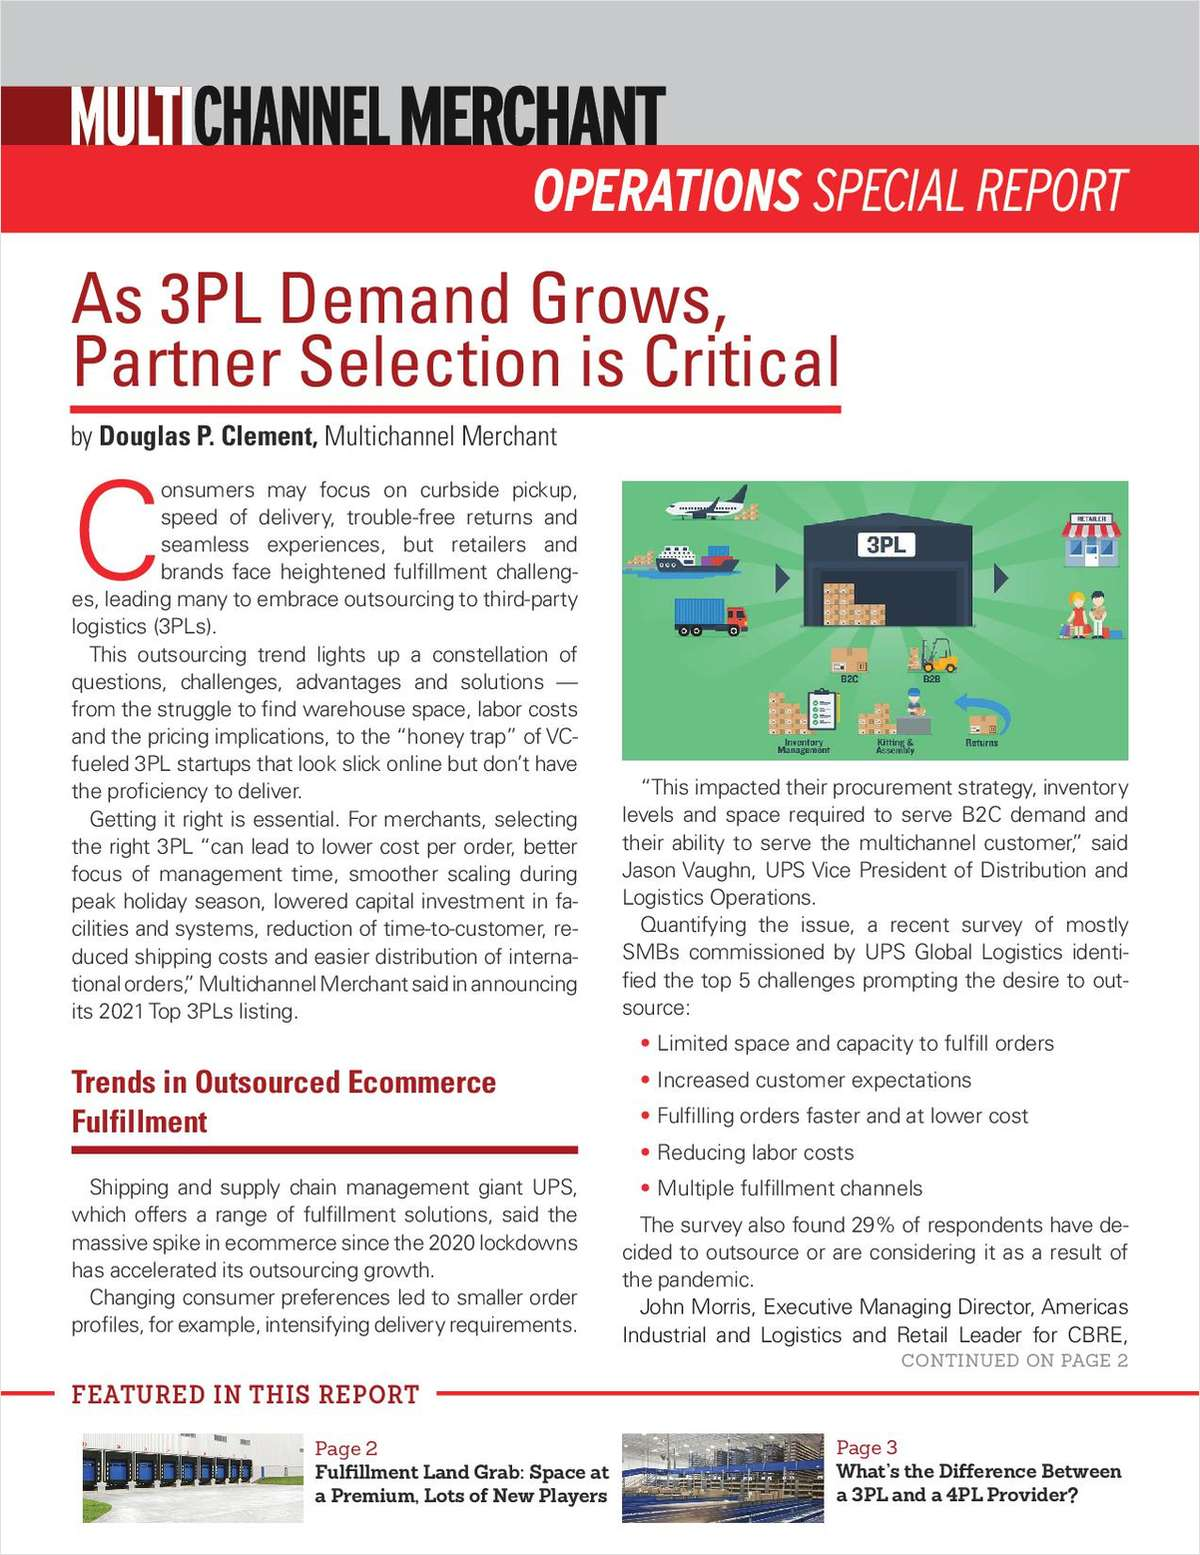 As 3PL Demand Grows, Partner Selection is Critical